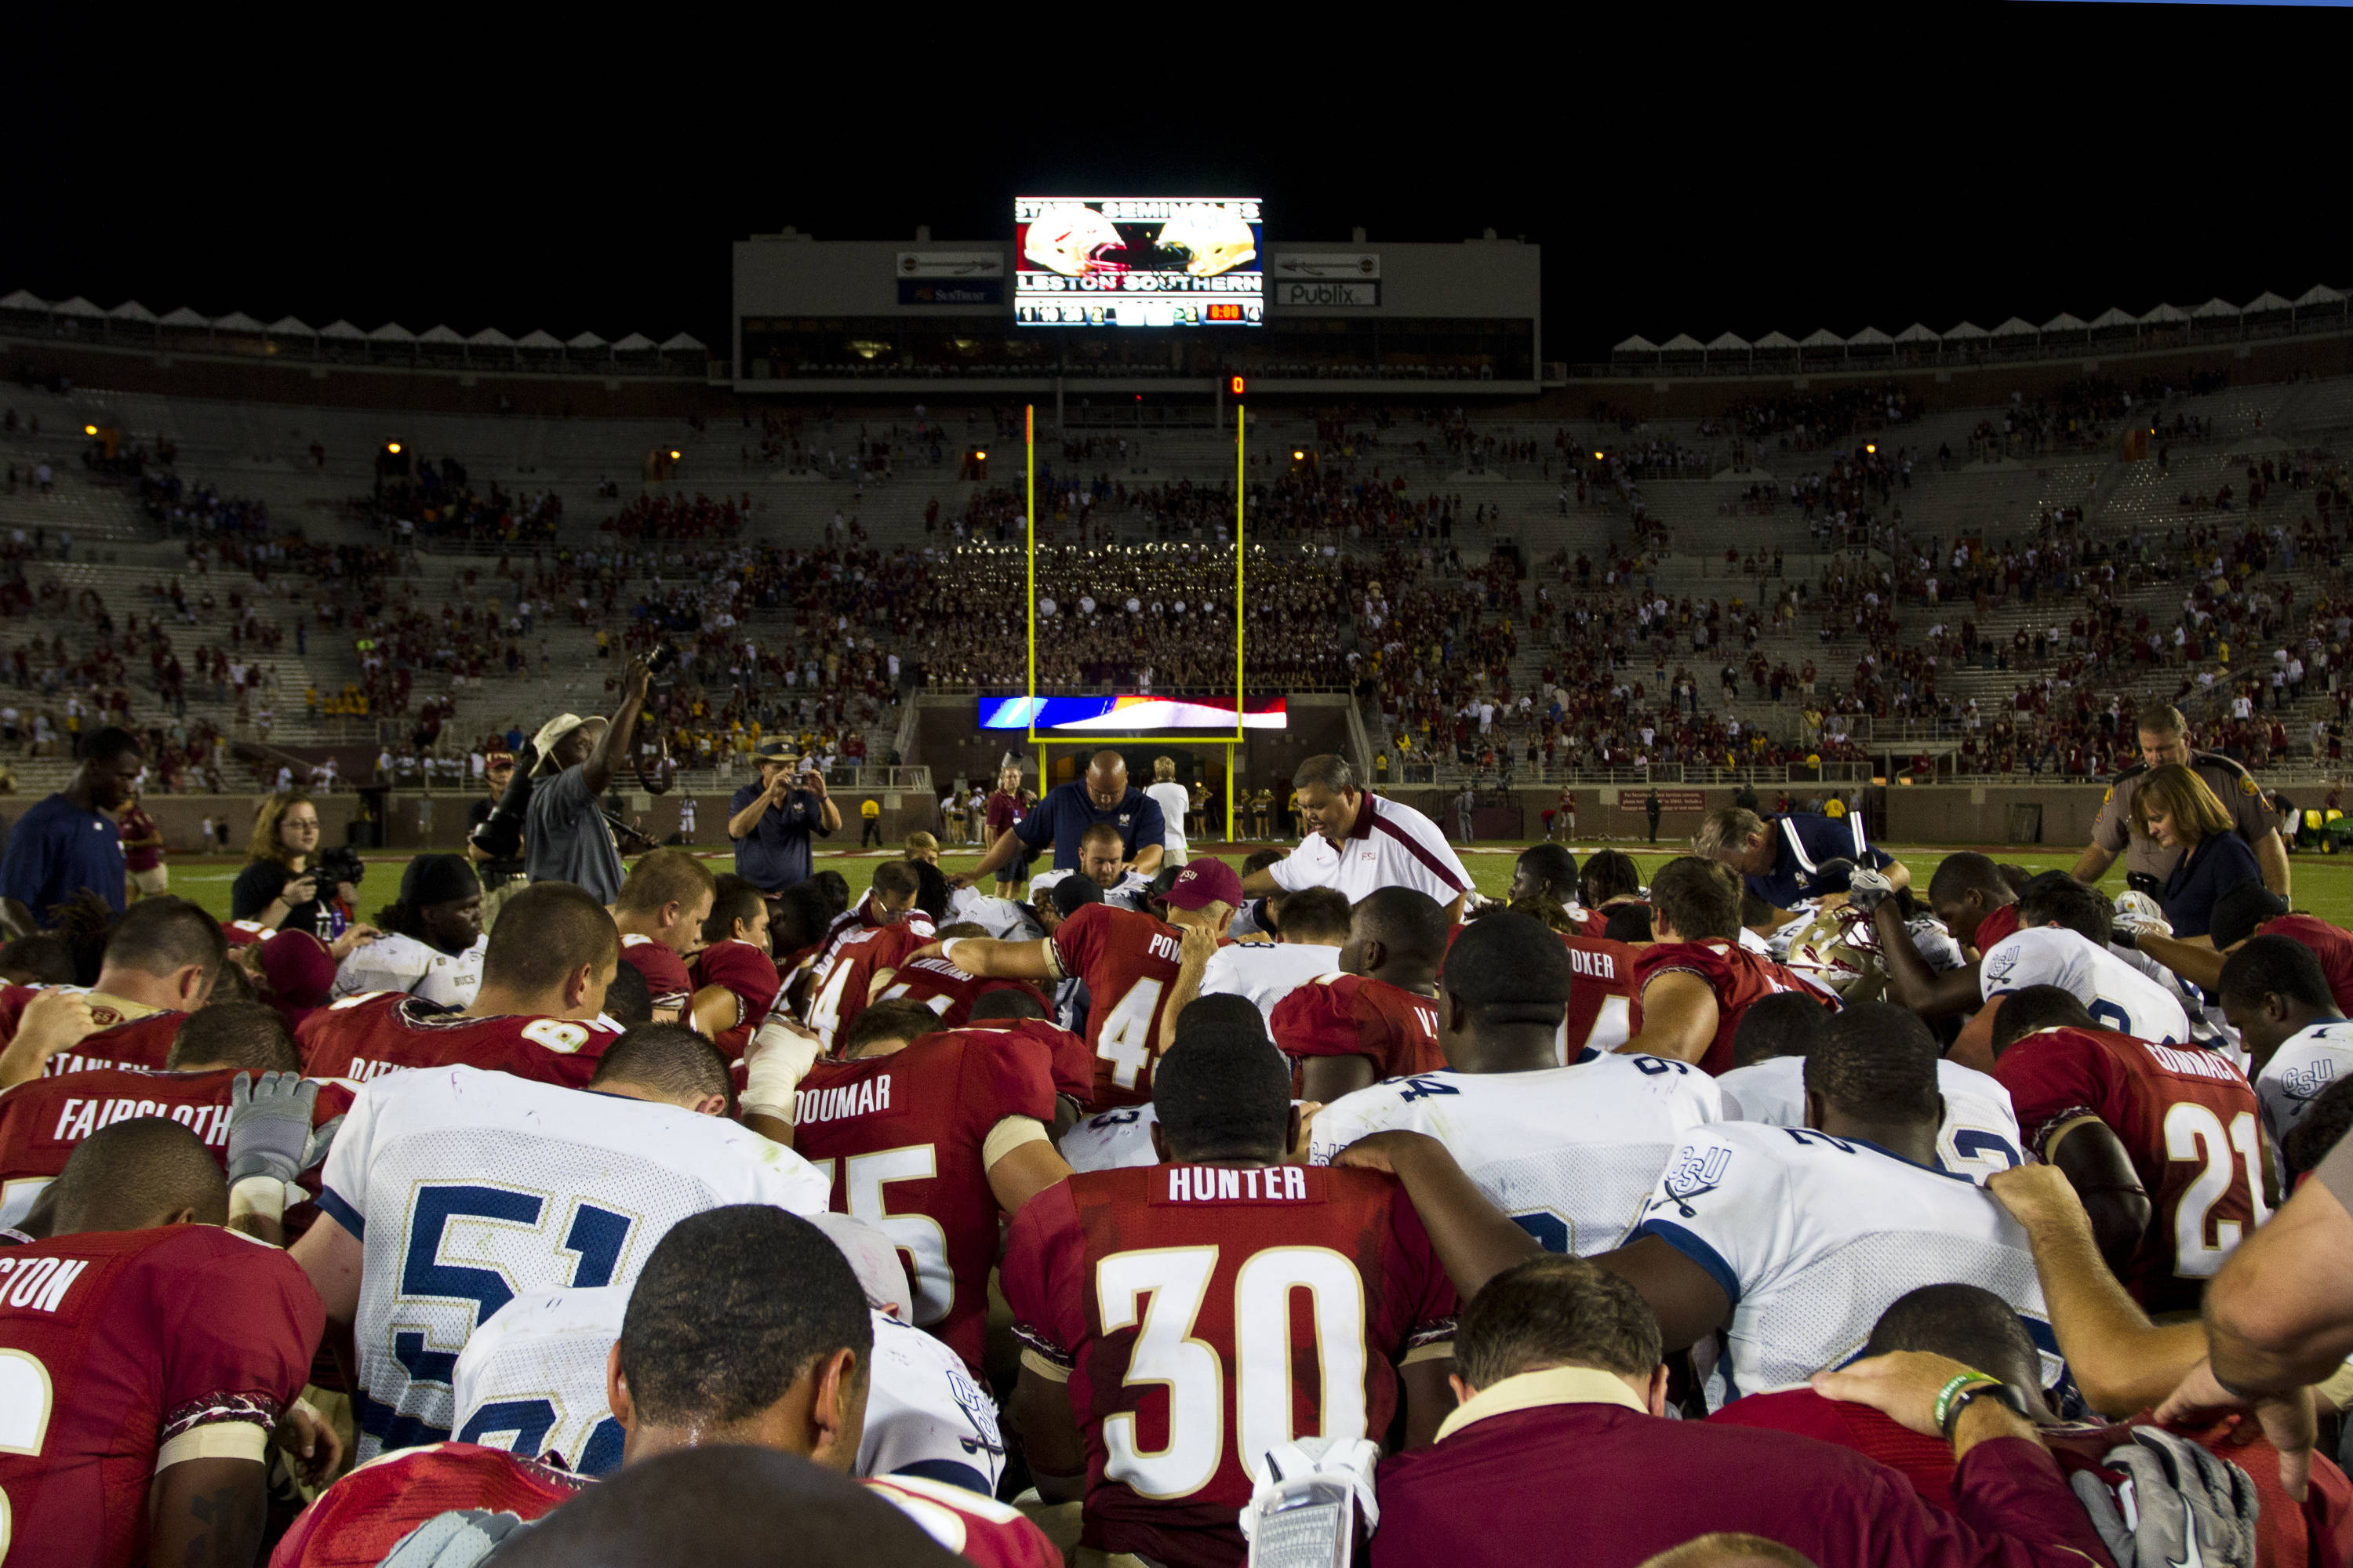 Post game, FSU vs CSU on September 10, 2011.